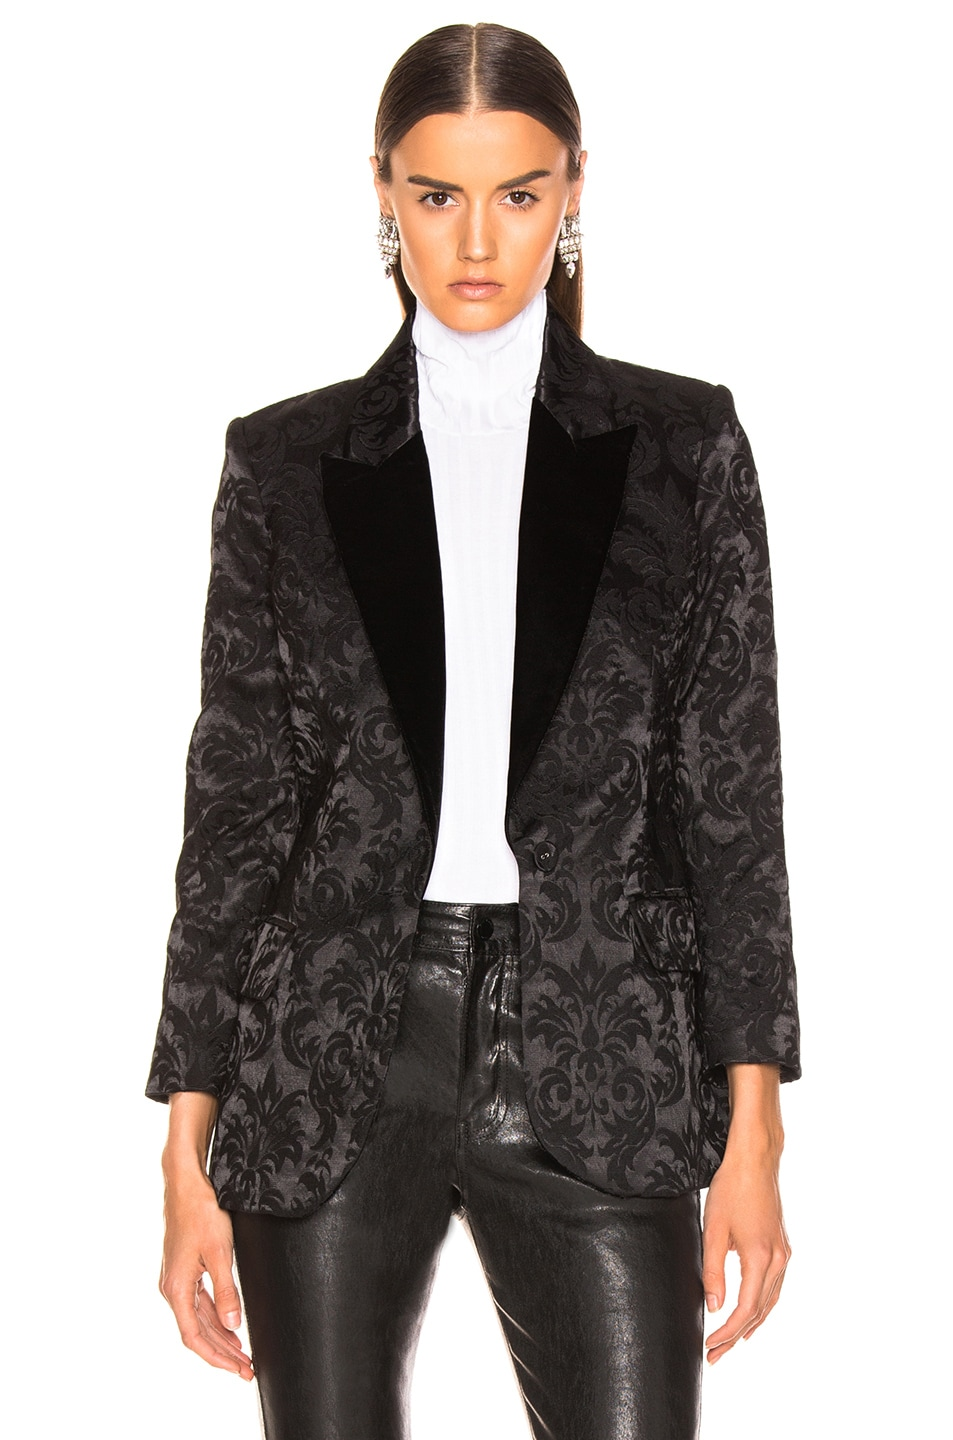 Image 2 of L'AGENCE Neval Blazer With Contrast Lapel in Black & Black